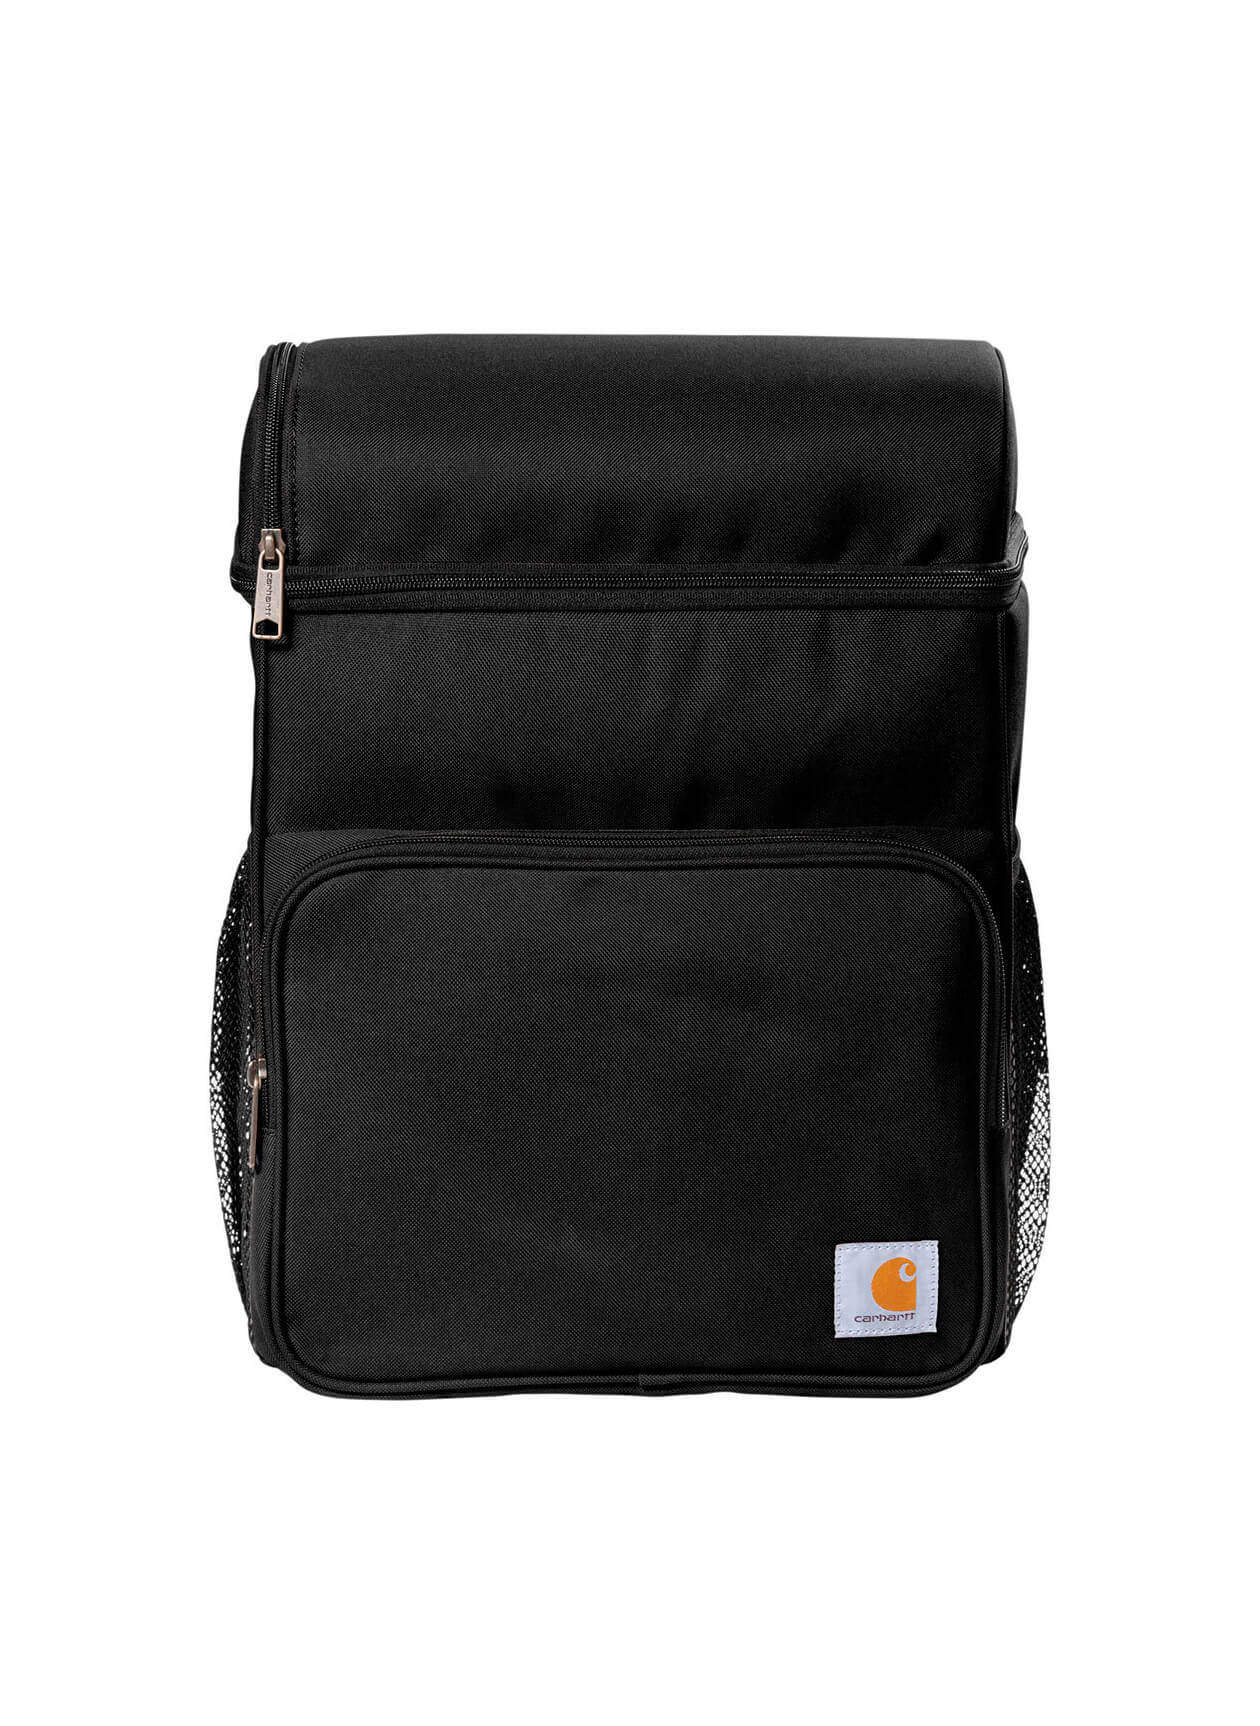 Carhartt Backpack 20-Can Cooler